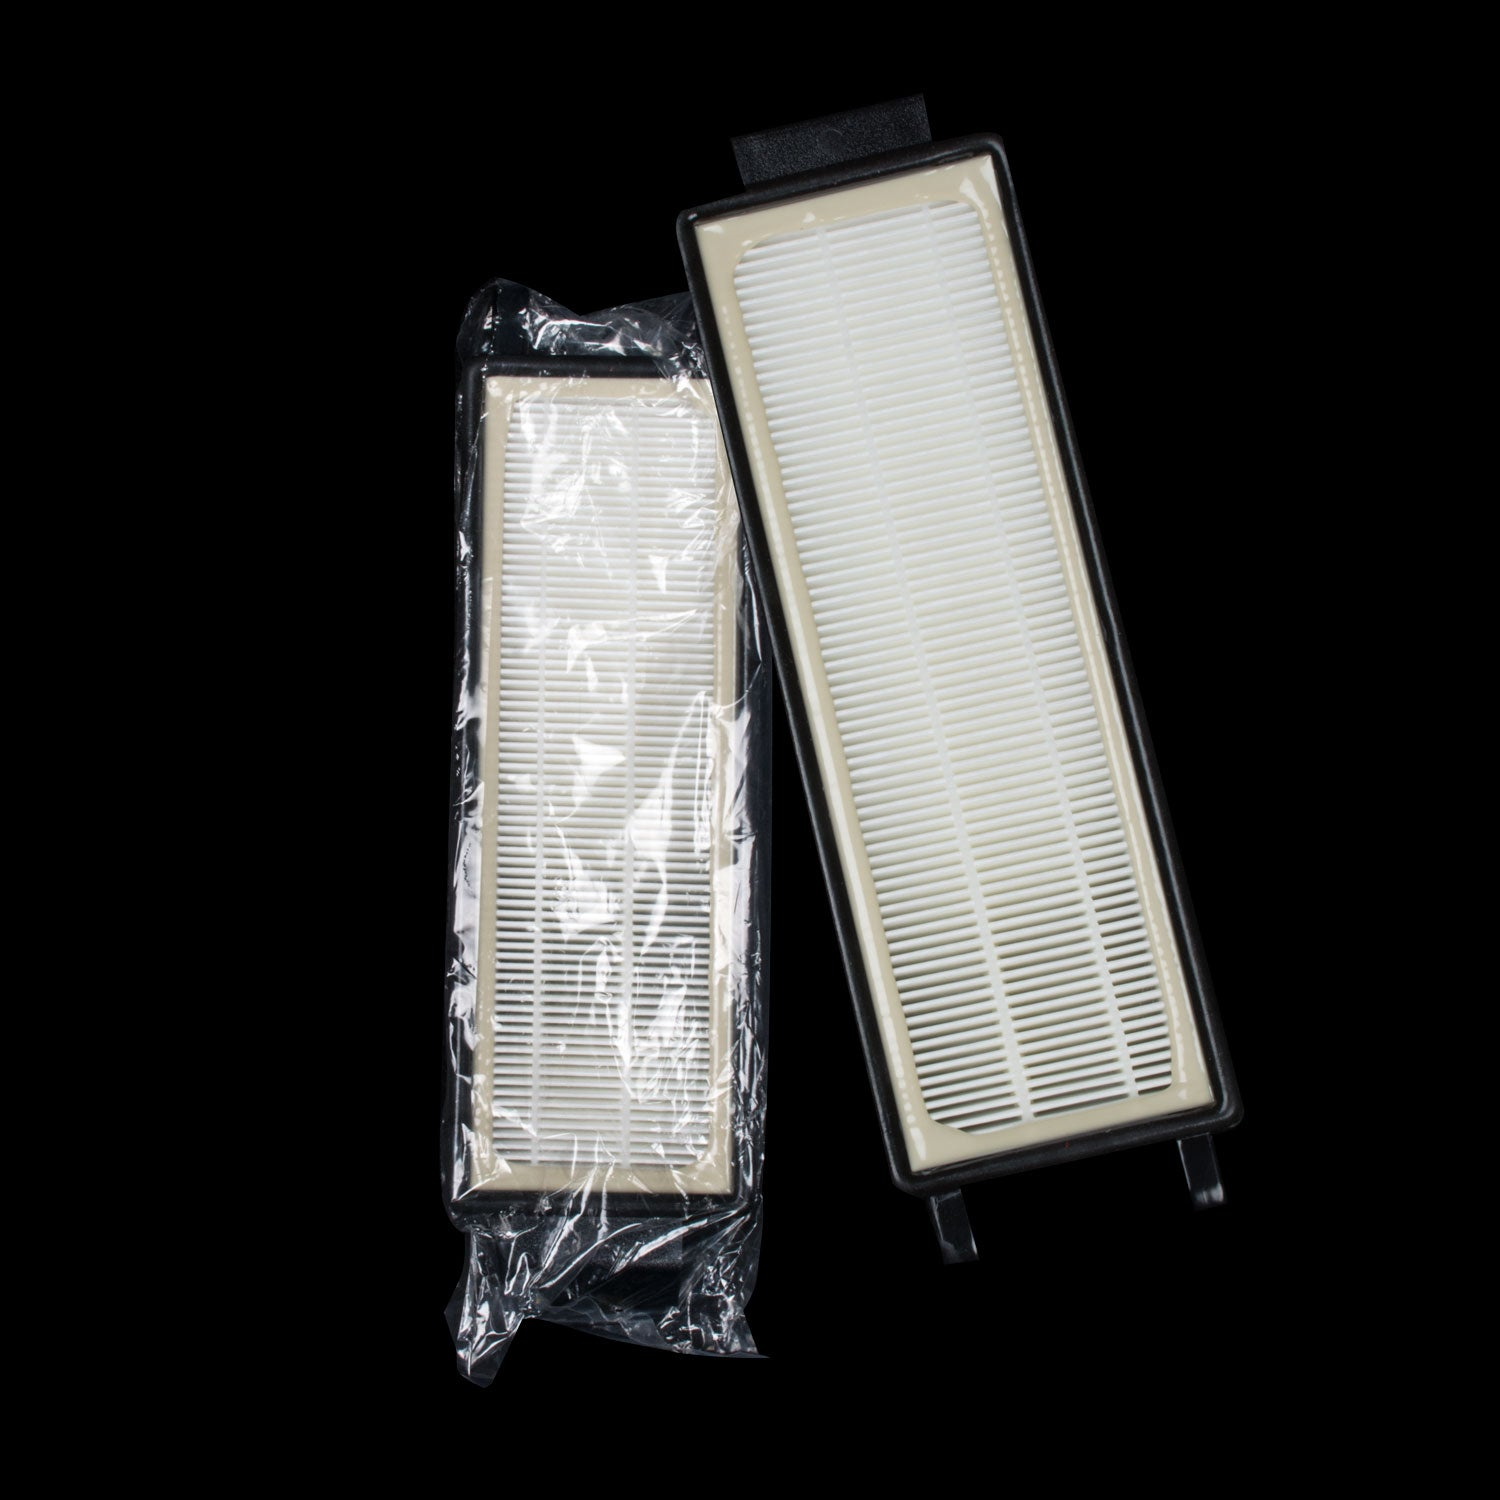 XSA61840 Sanitaire OEM HEPA Washable Exhuast Filter Type HF-5 for Commercial Upright Vacuum